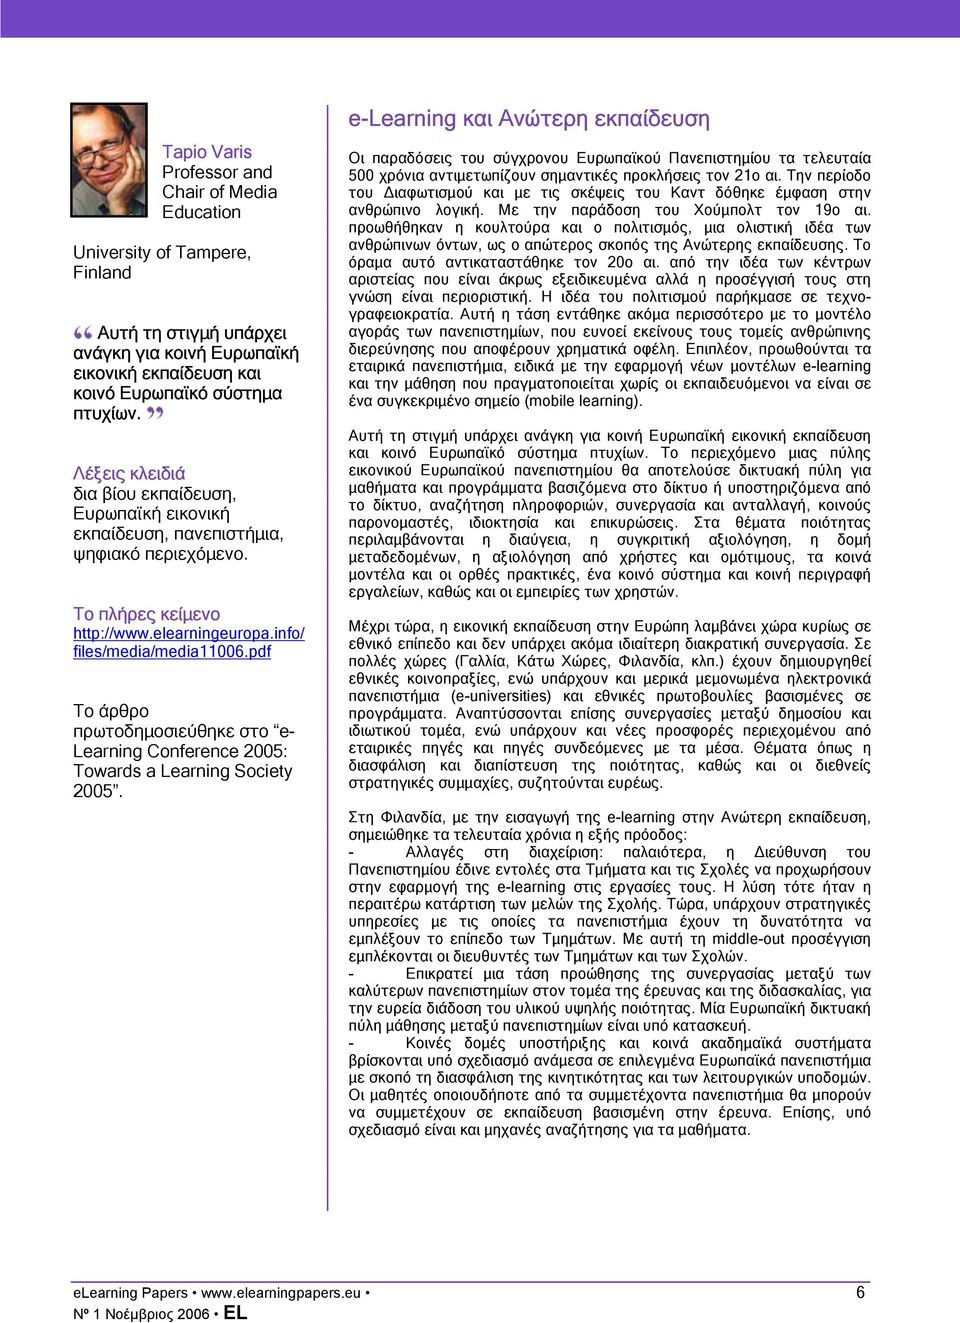 pdf Το άρθρο πρωτοδηµοσιεύθηκε στο e- Learning Conference 2005: Towards a Learning Society 2005.